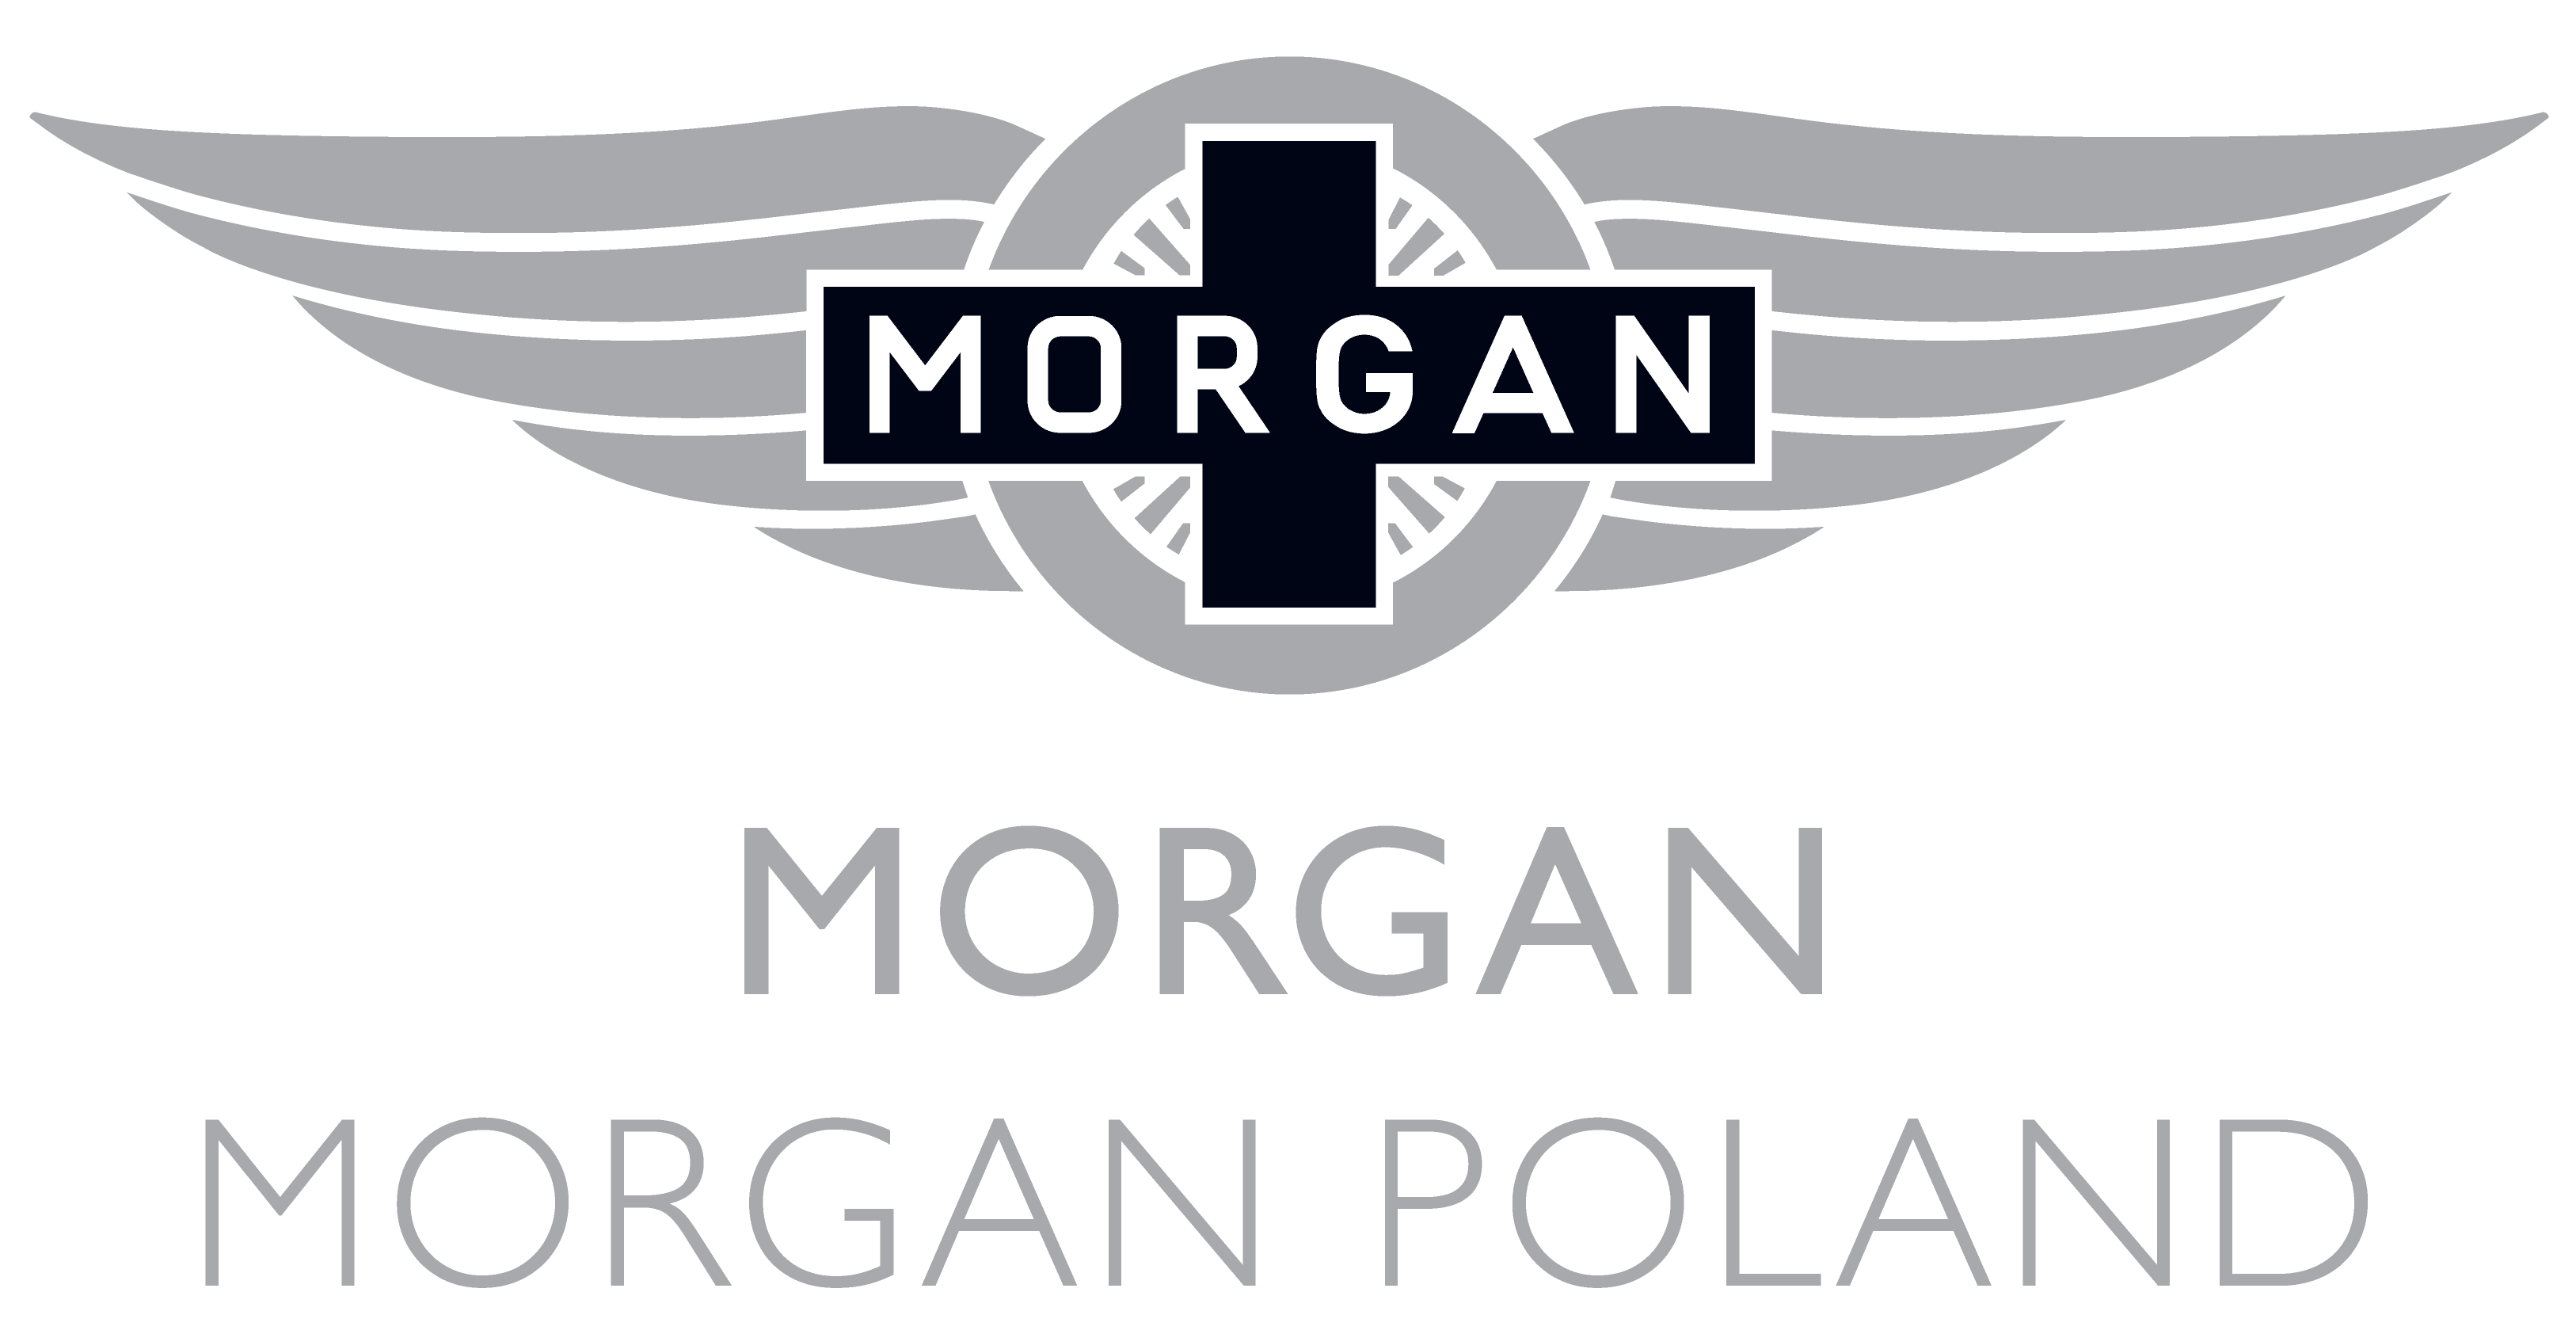 Morgan Motors Polska